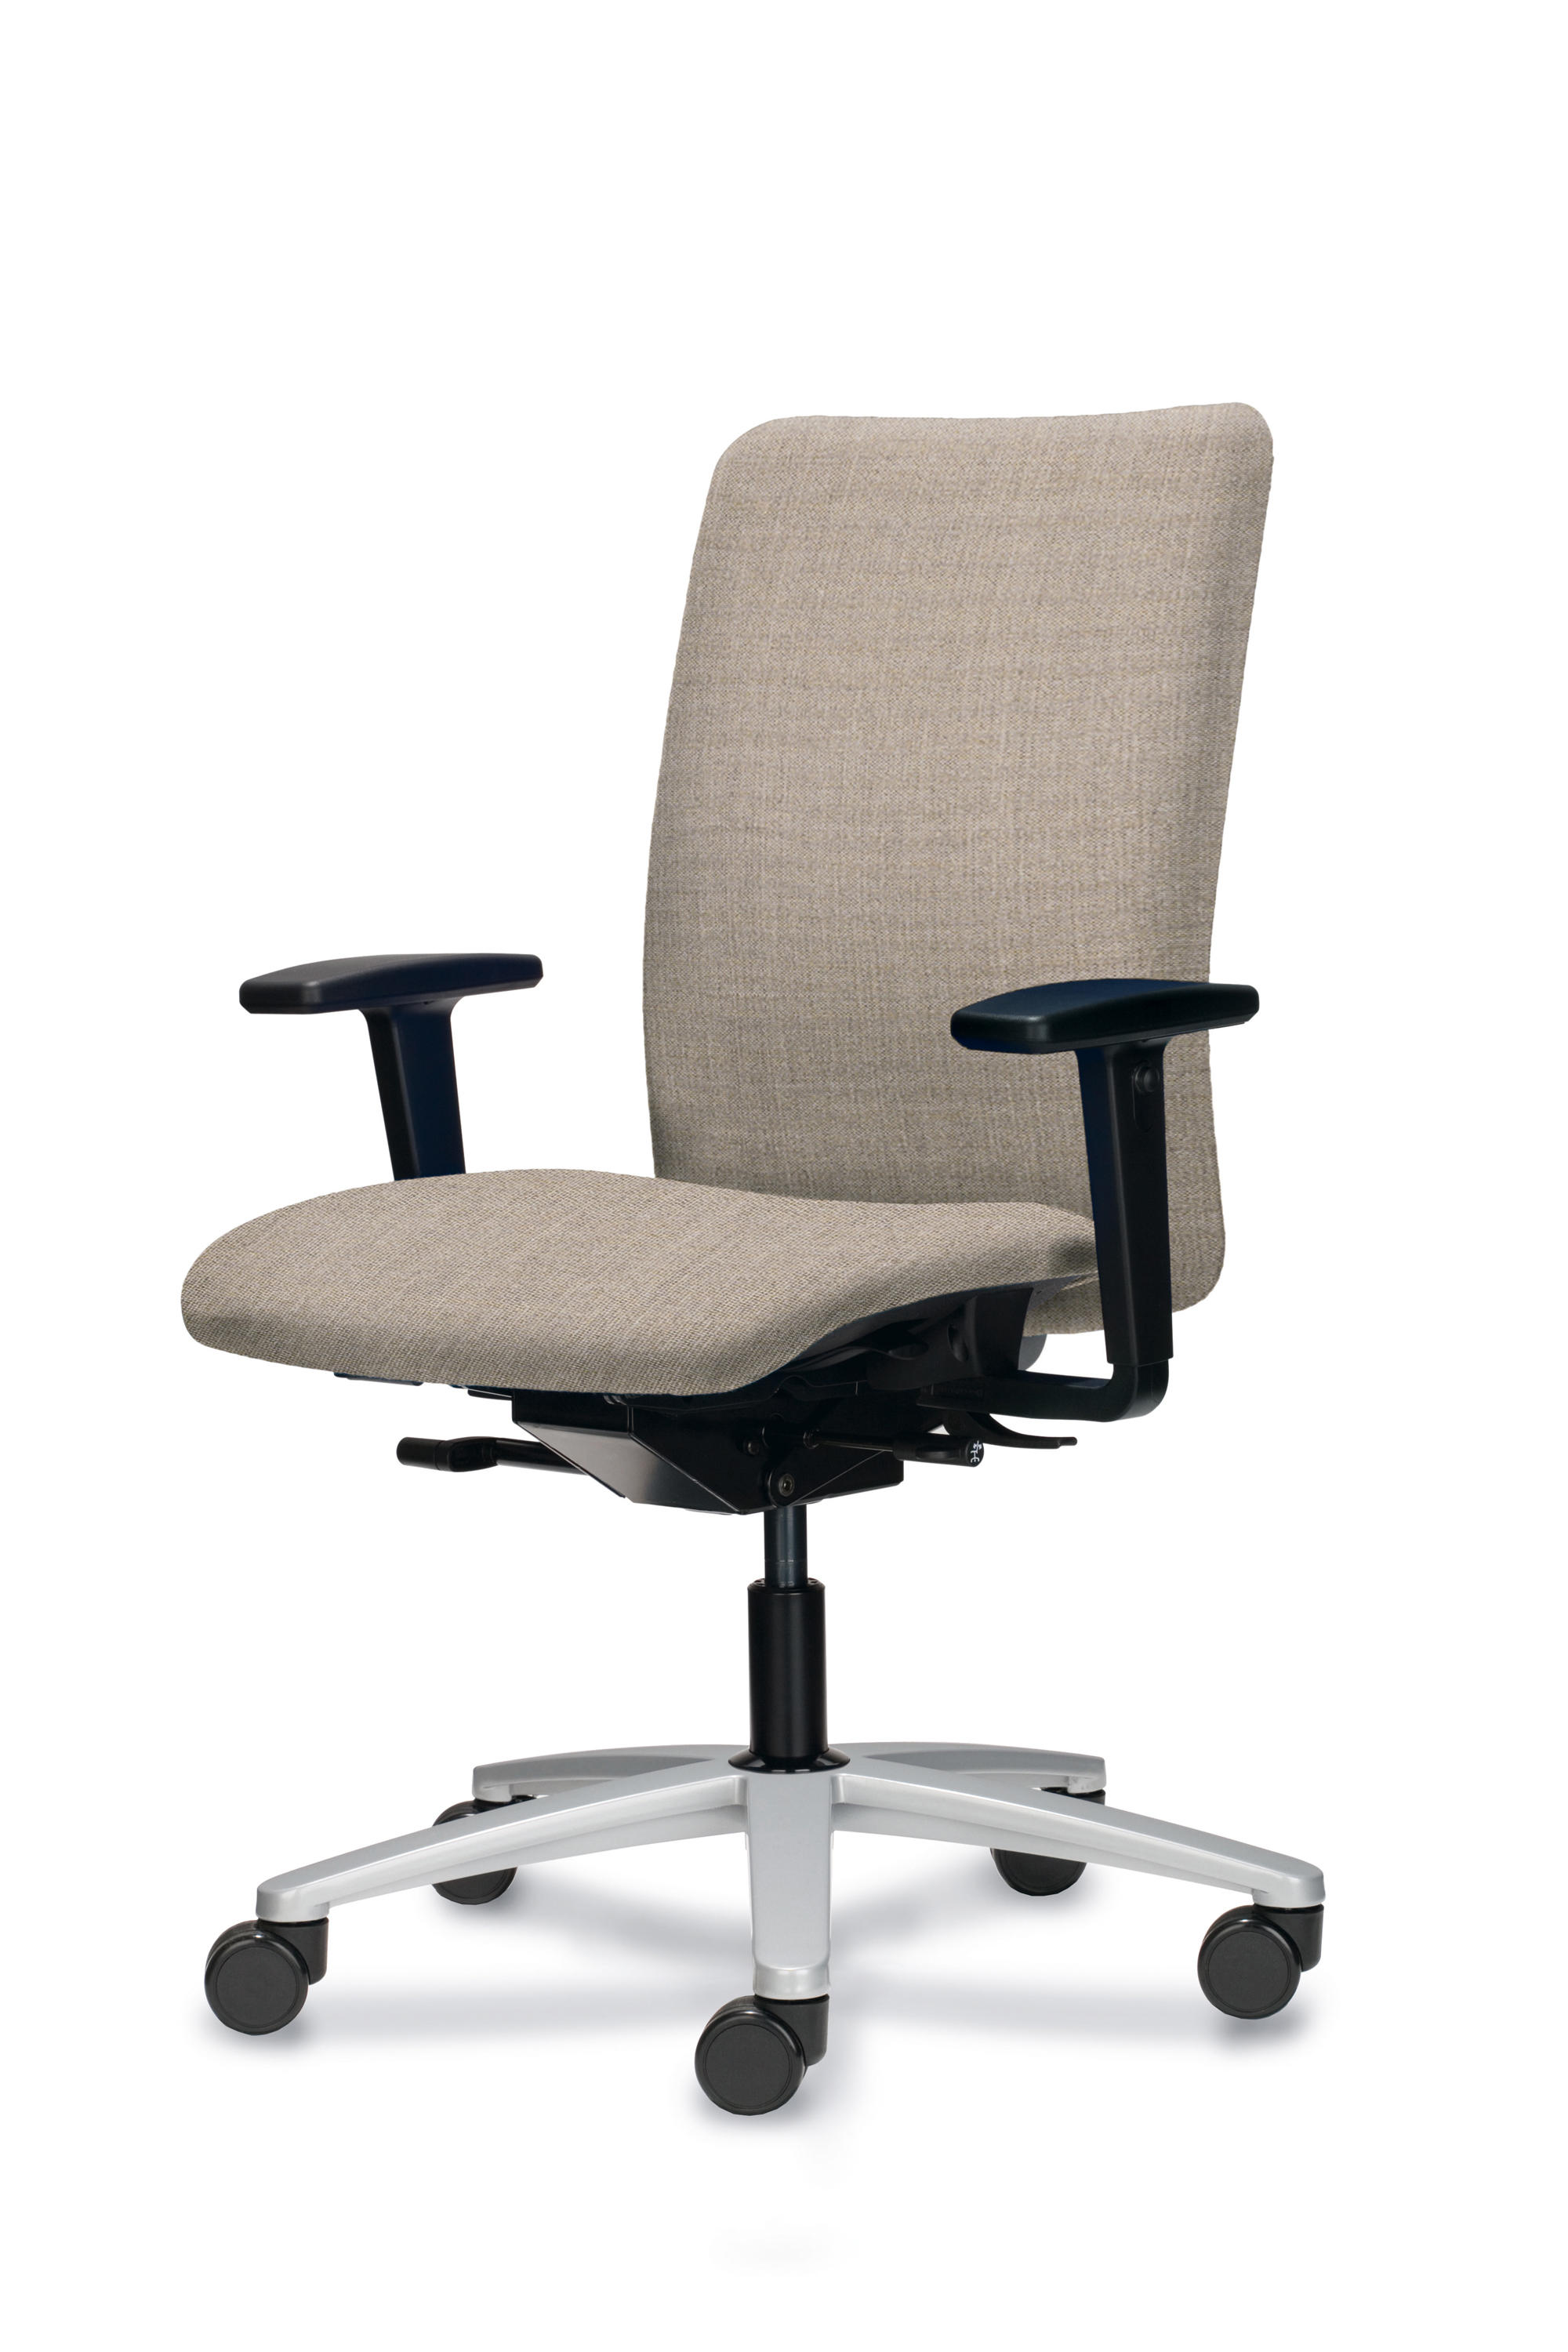 jet swivel chair by konig neurath konig neurath office. Black Bedroom Furniture Sets. Home Design Ideas